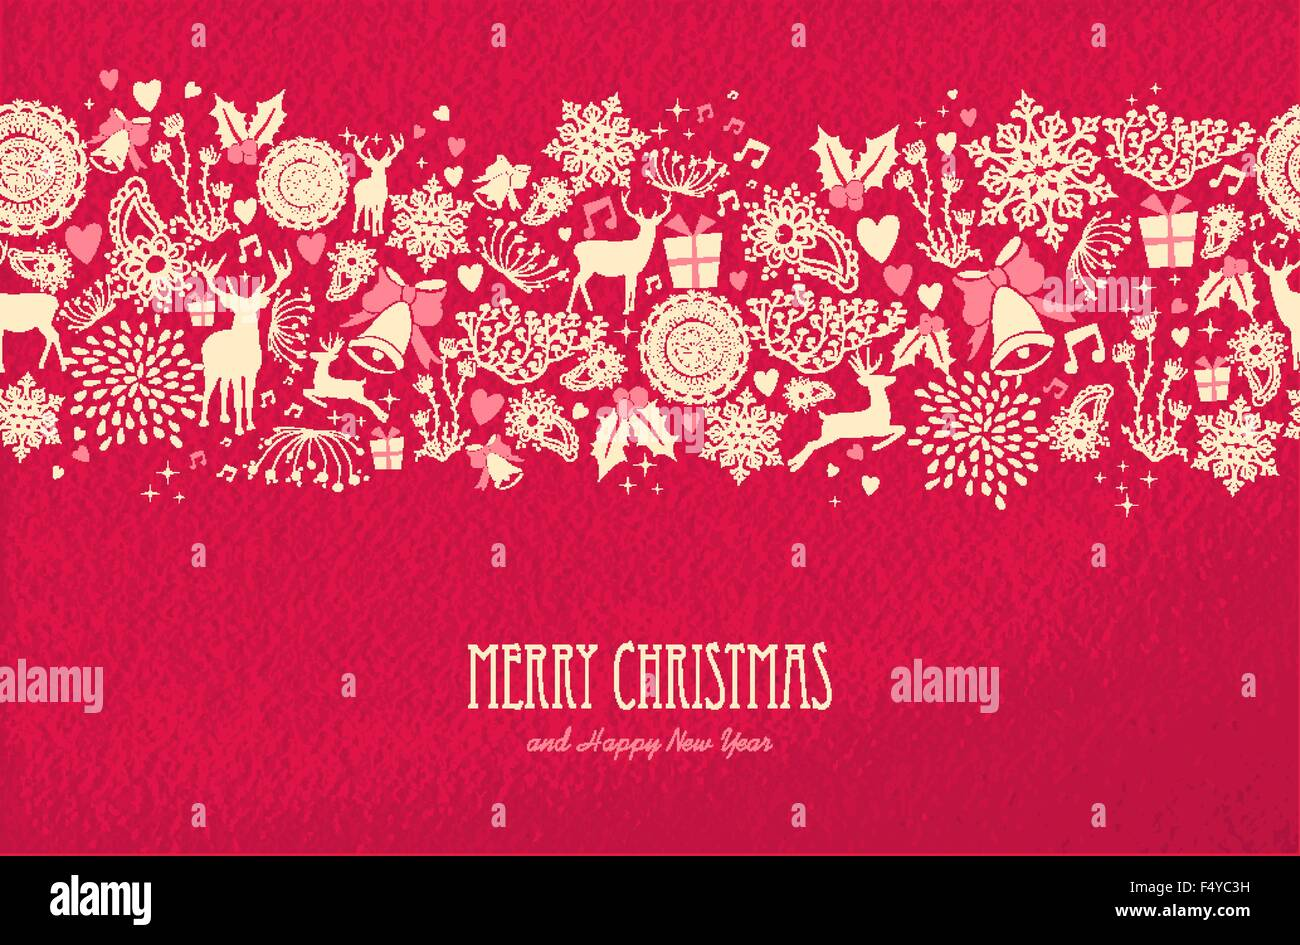 merry christmas happy new year seamless pattern design on red texture background with deer nature and holiday elements